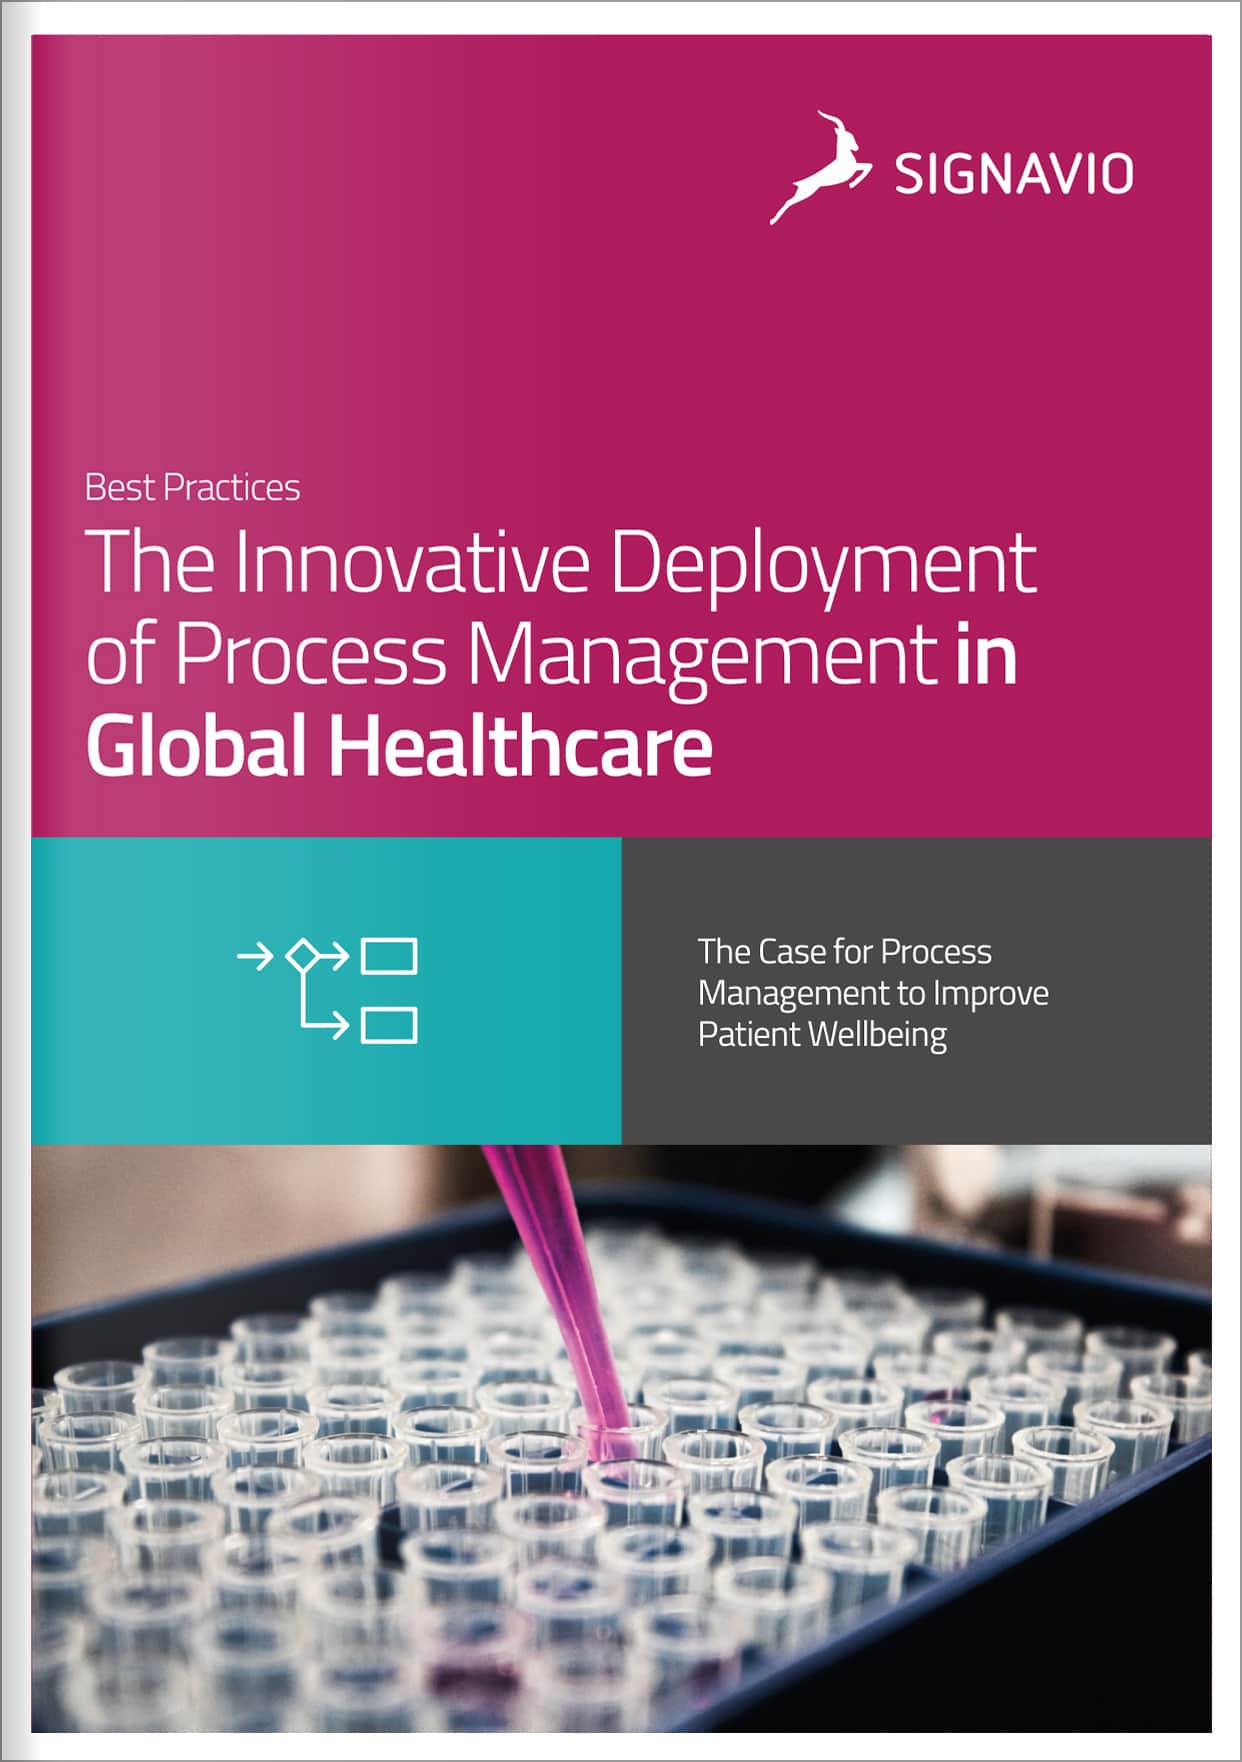 Process management in global healthcare